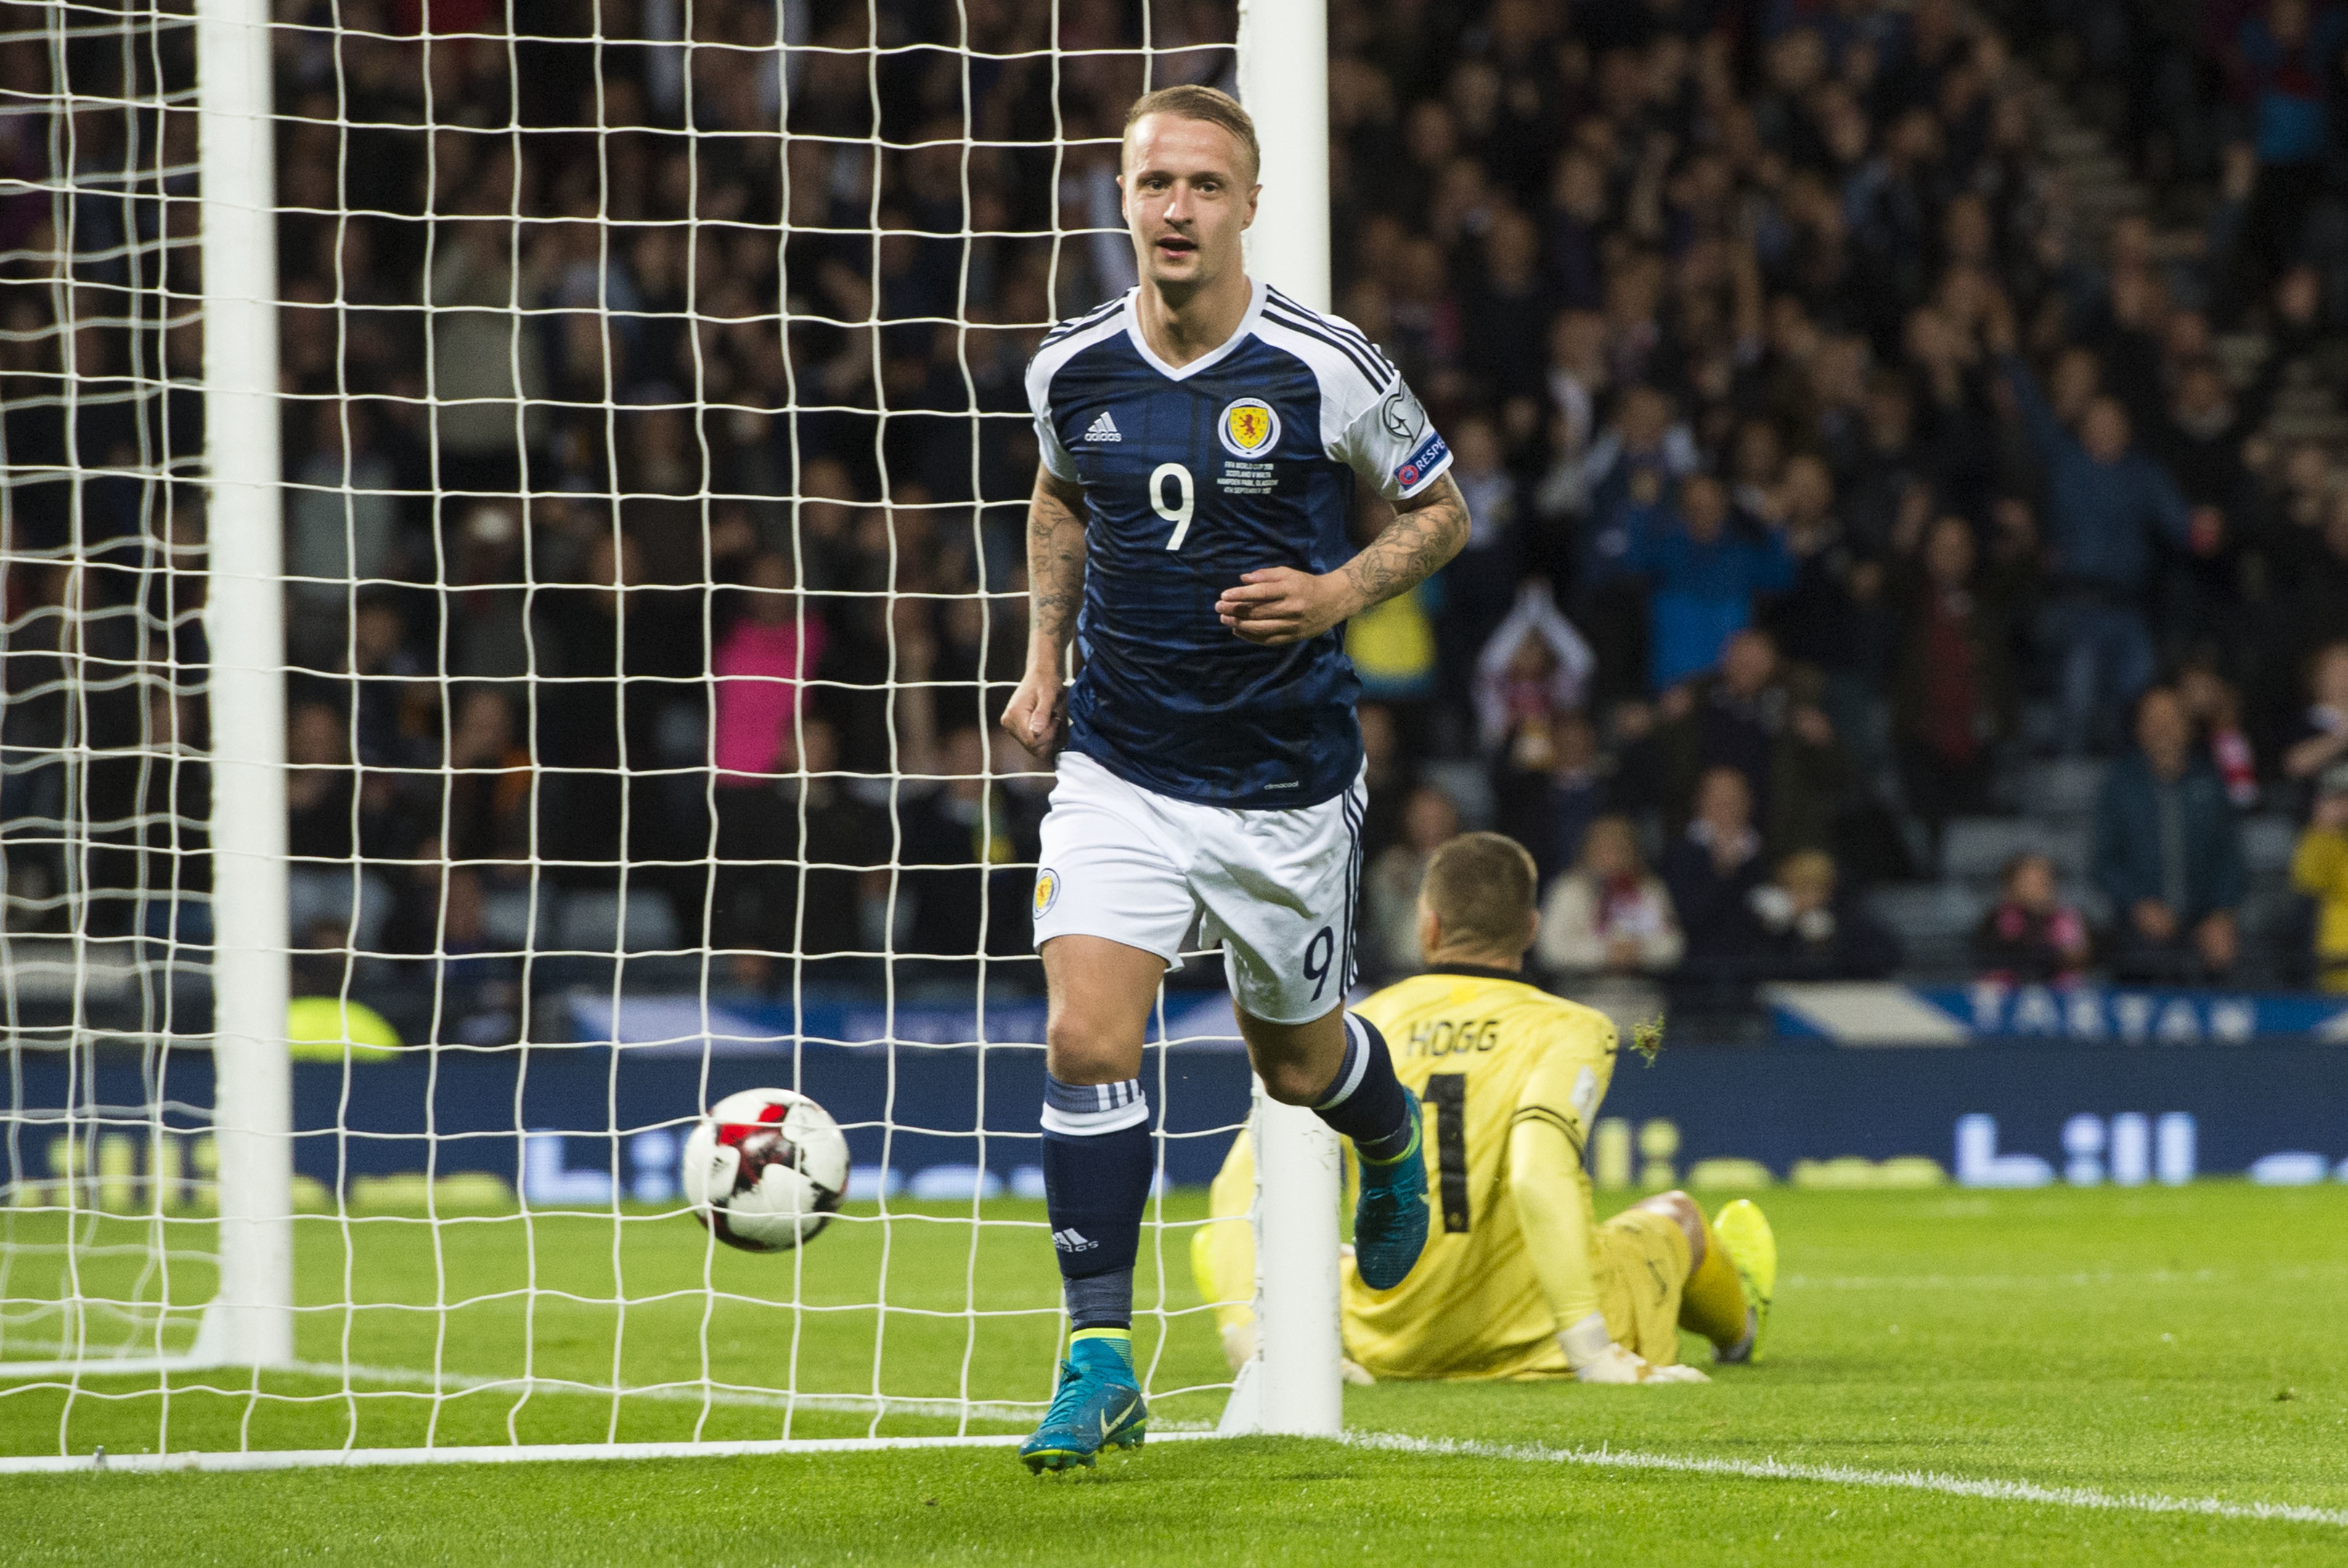 Scotland's Leigh Griffiths celebrates after scoring his side's second goal.